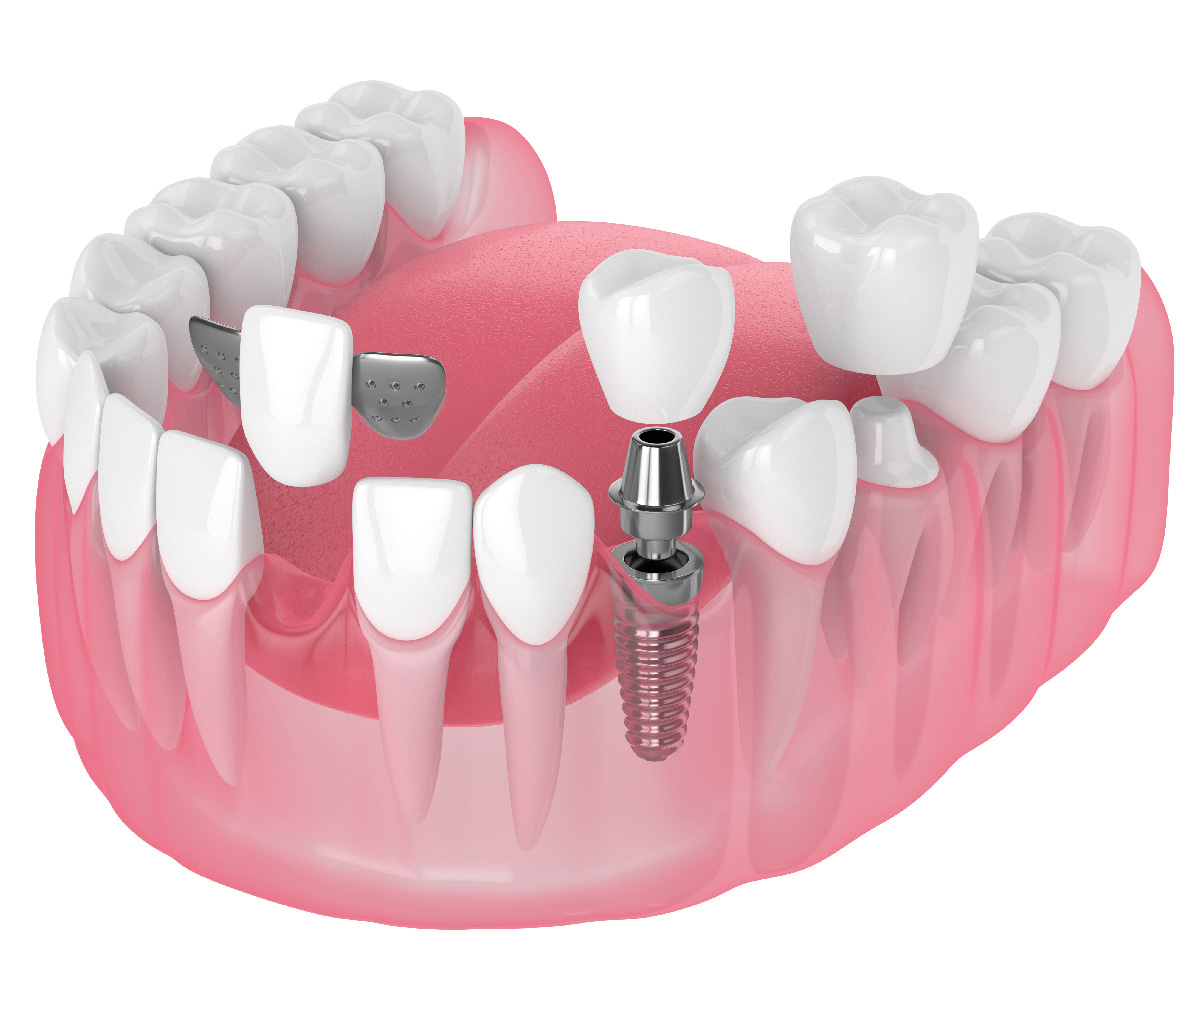 David Son, DDS Dentist in Irvine, CA providing answers to commonly asked questions regarding porcelain dental bridges